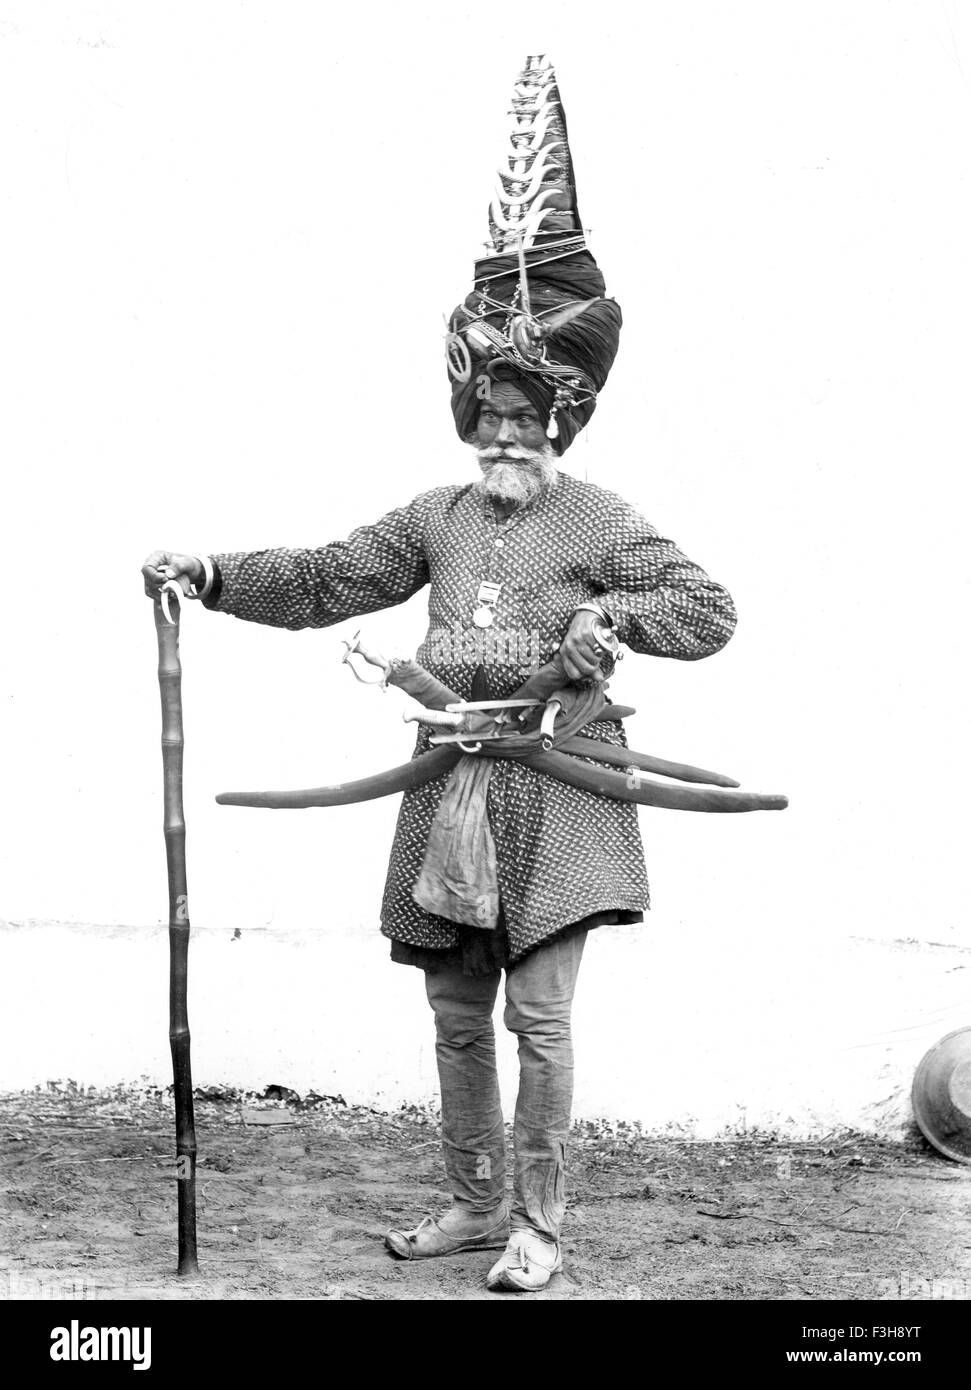 VETERAN INDIAN ARMY SOLDIER about 1905 - Stock Image